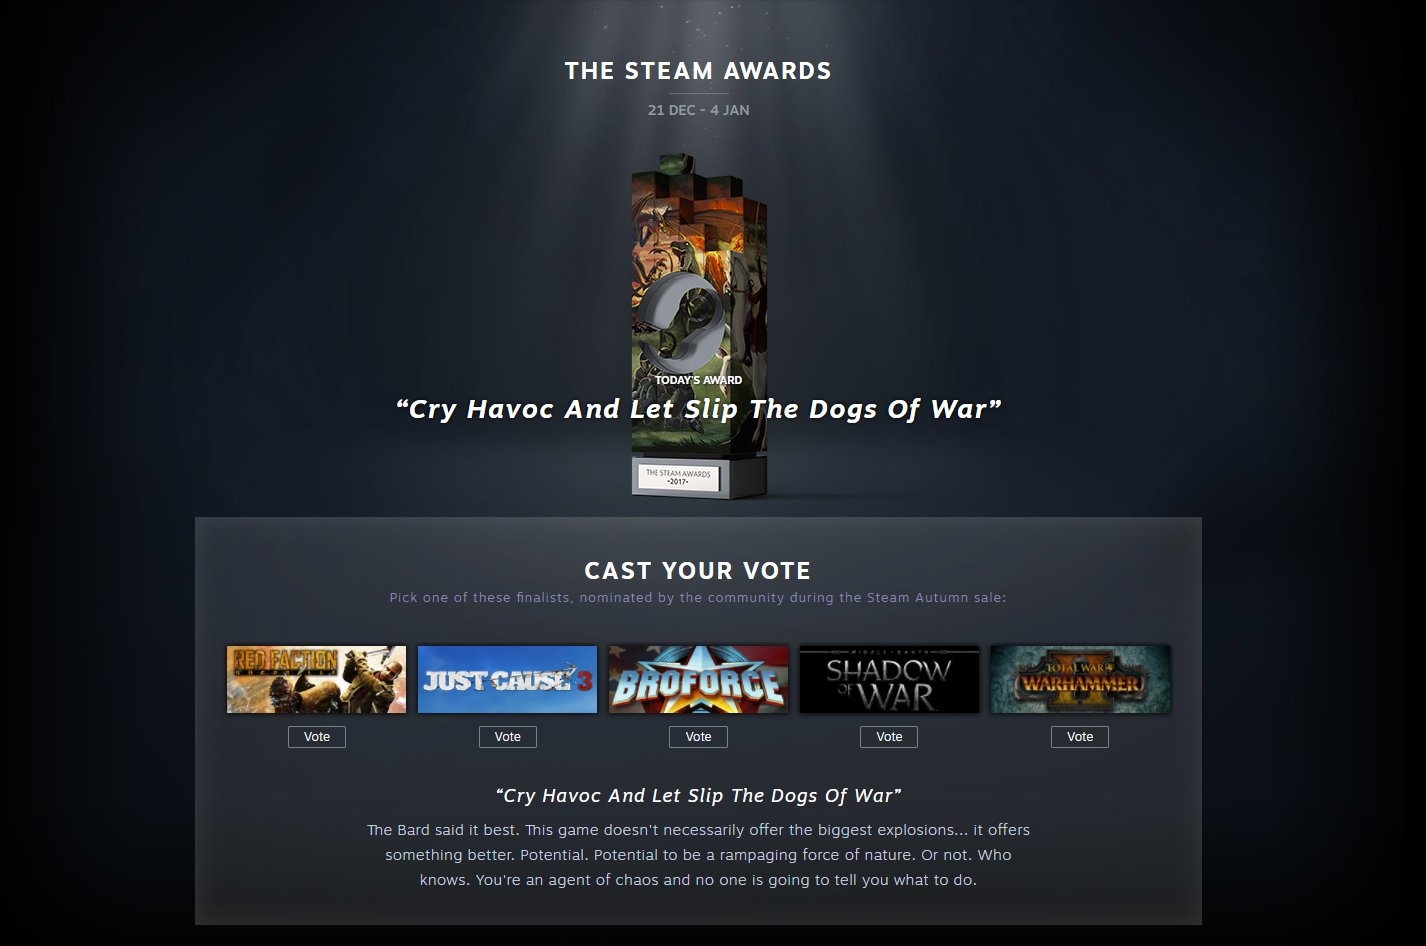 "And Let Slip The Dogs Of War wickedplayer494 on twitter: ""today on the steam awards, vote"